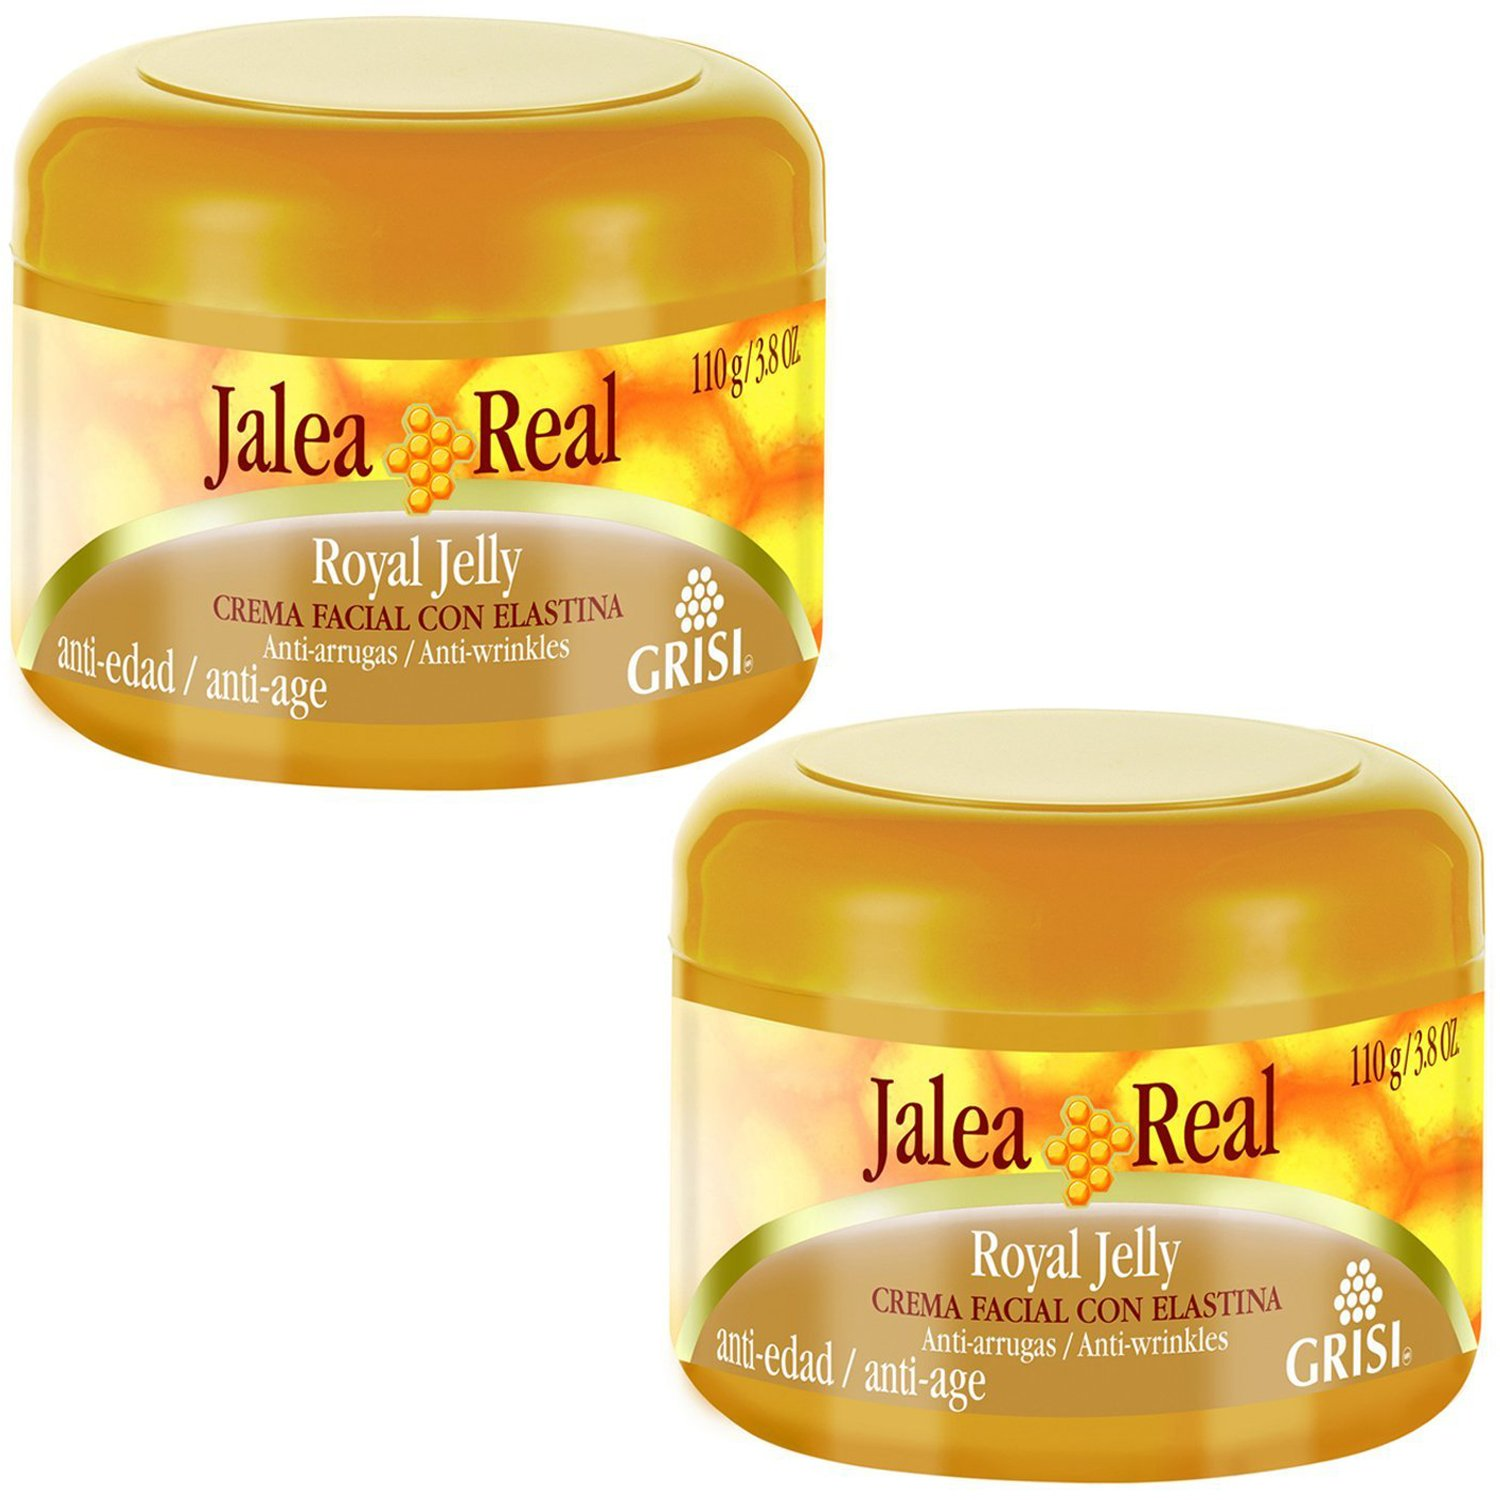 Jalea Real Anti Aging Anti Wrinkles Moisturizing Cream with Elastin 3.8 Oz. 2-PACK